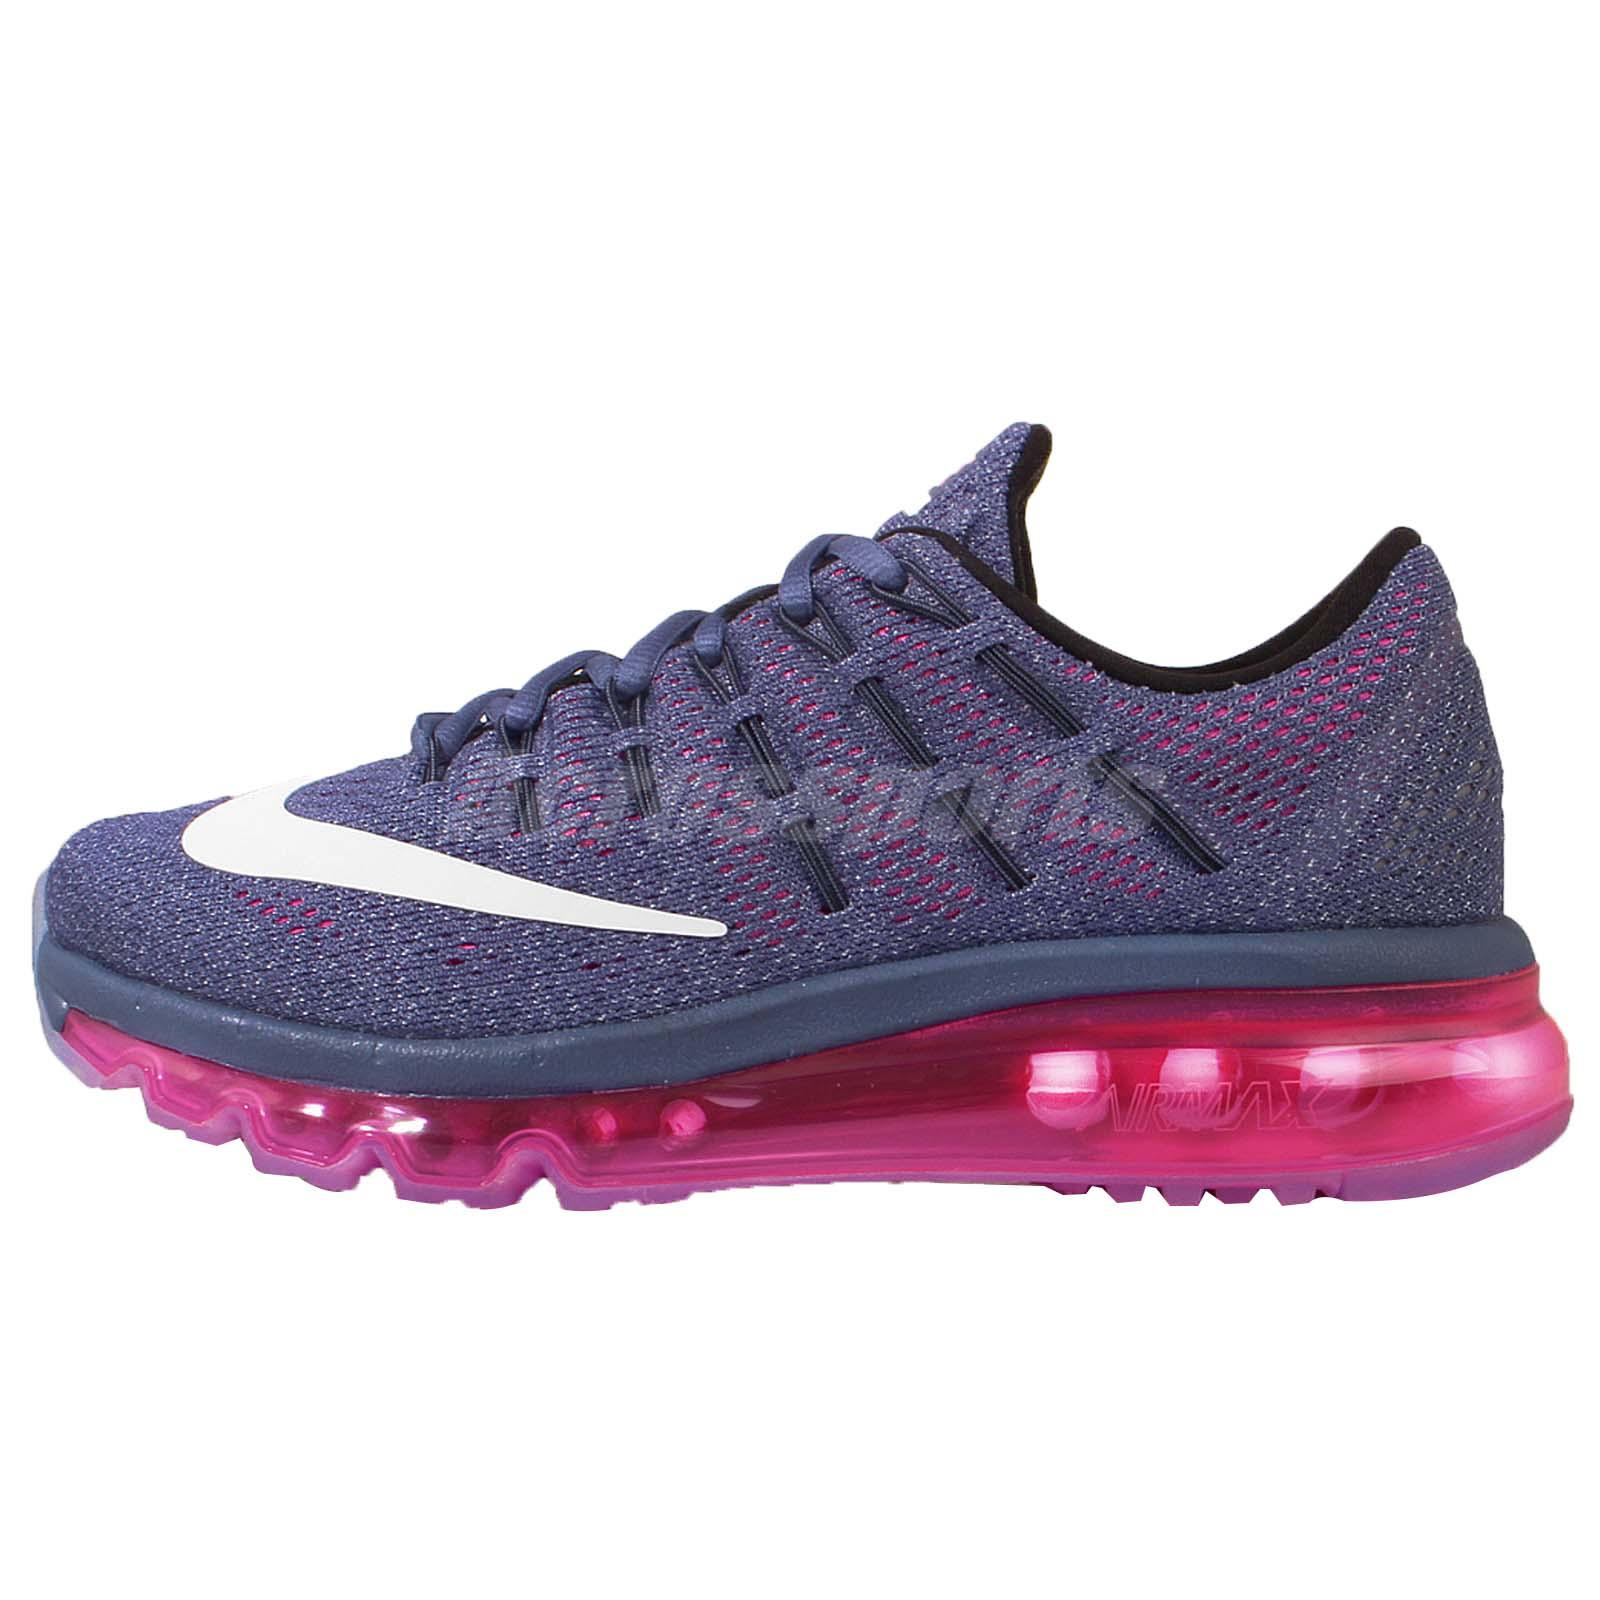 wmns nike air max 2016 purple white pink womens running. Black Bedroom Furniture Sets. Home Design Ideas